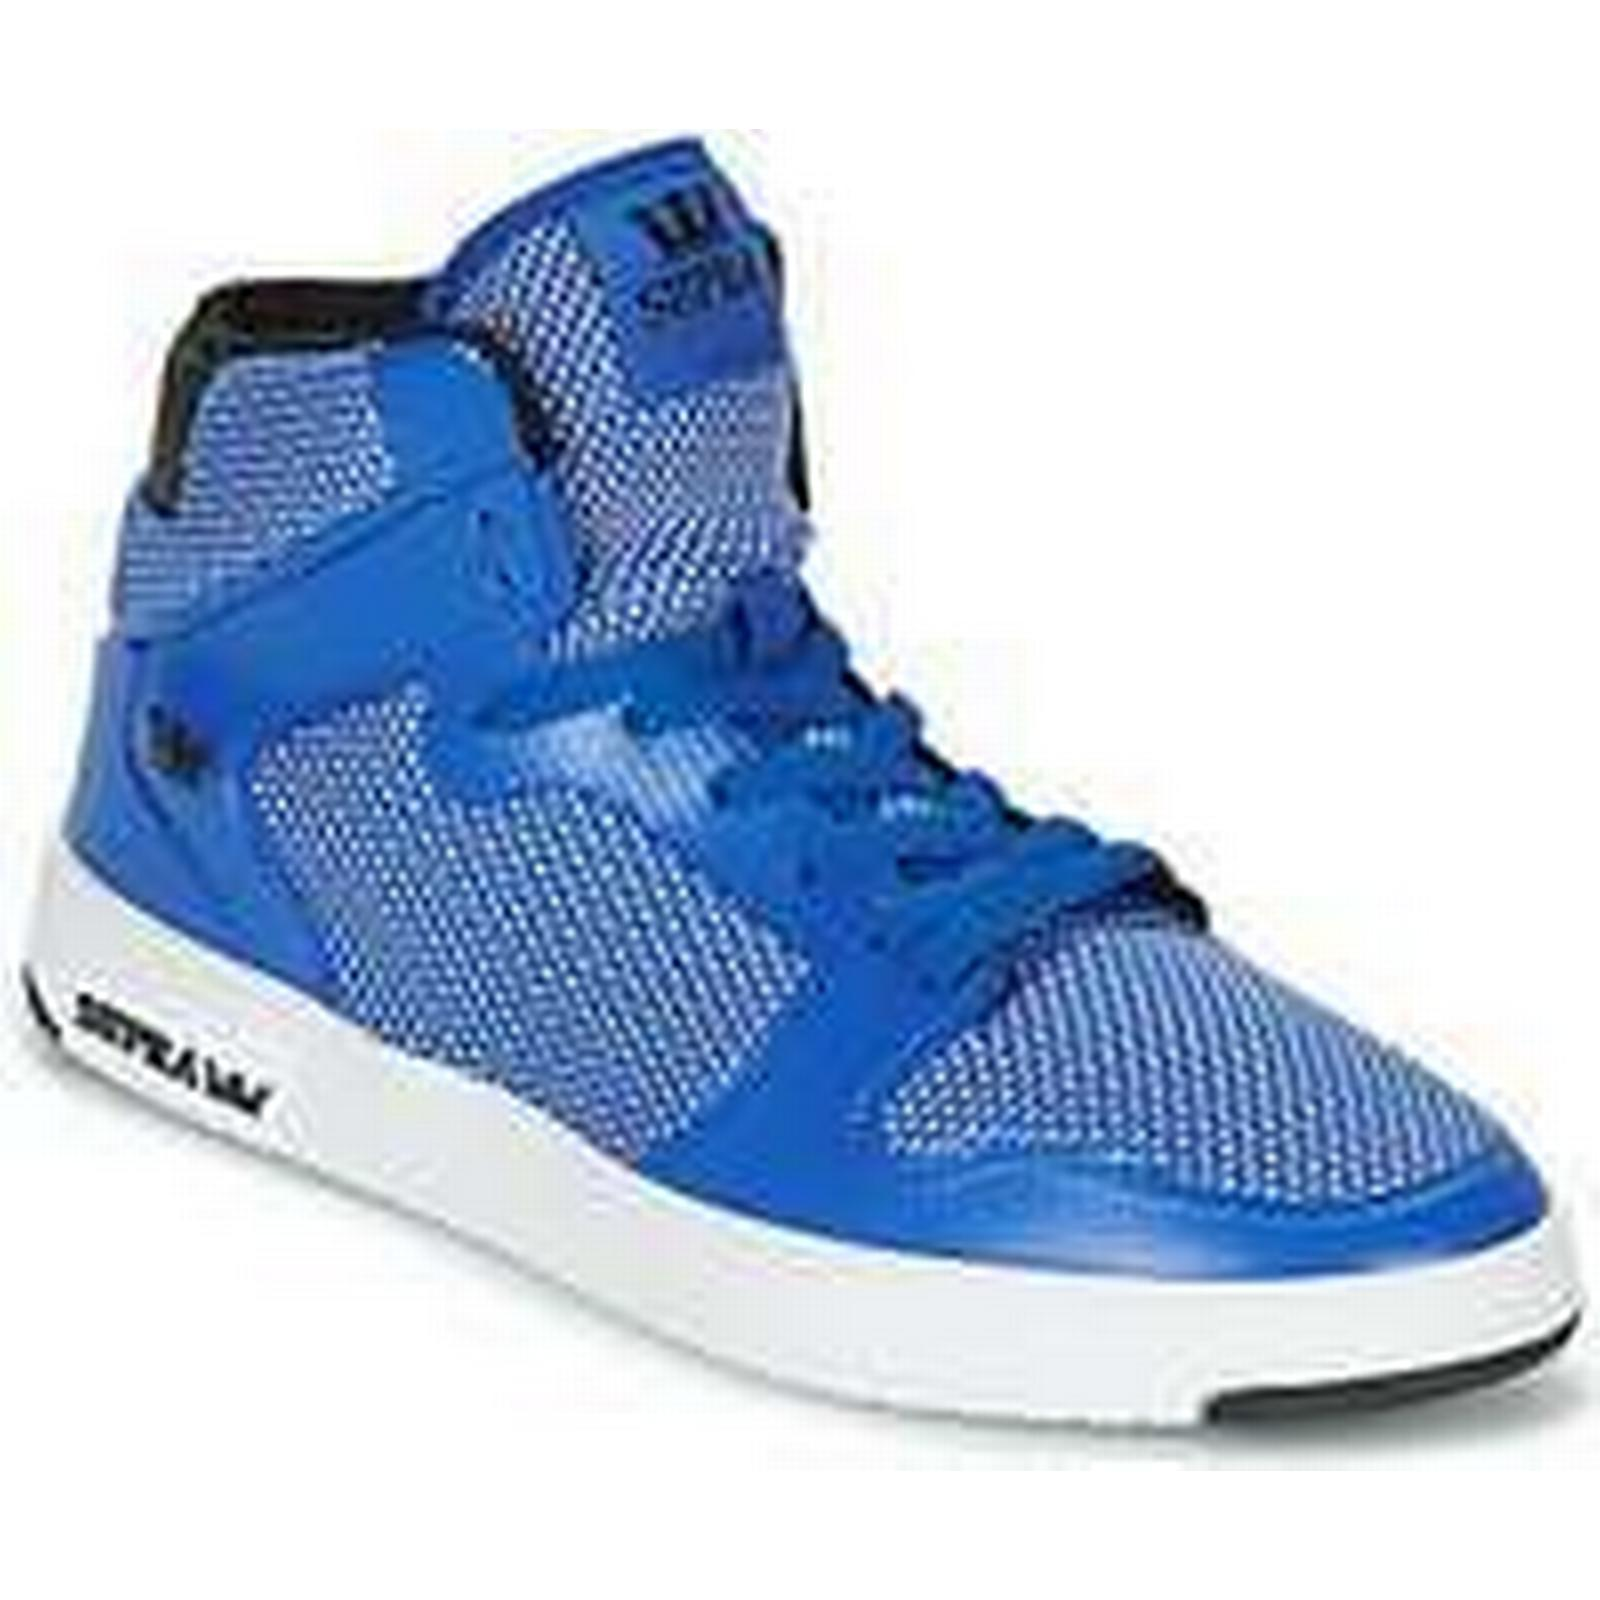 spartoo.co.uk supra vaider . hommes hommes hommes & #  ; s Chaussure s crampons formateurs en bleu 535410